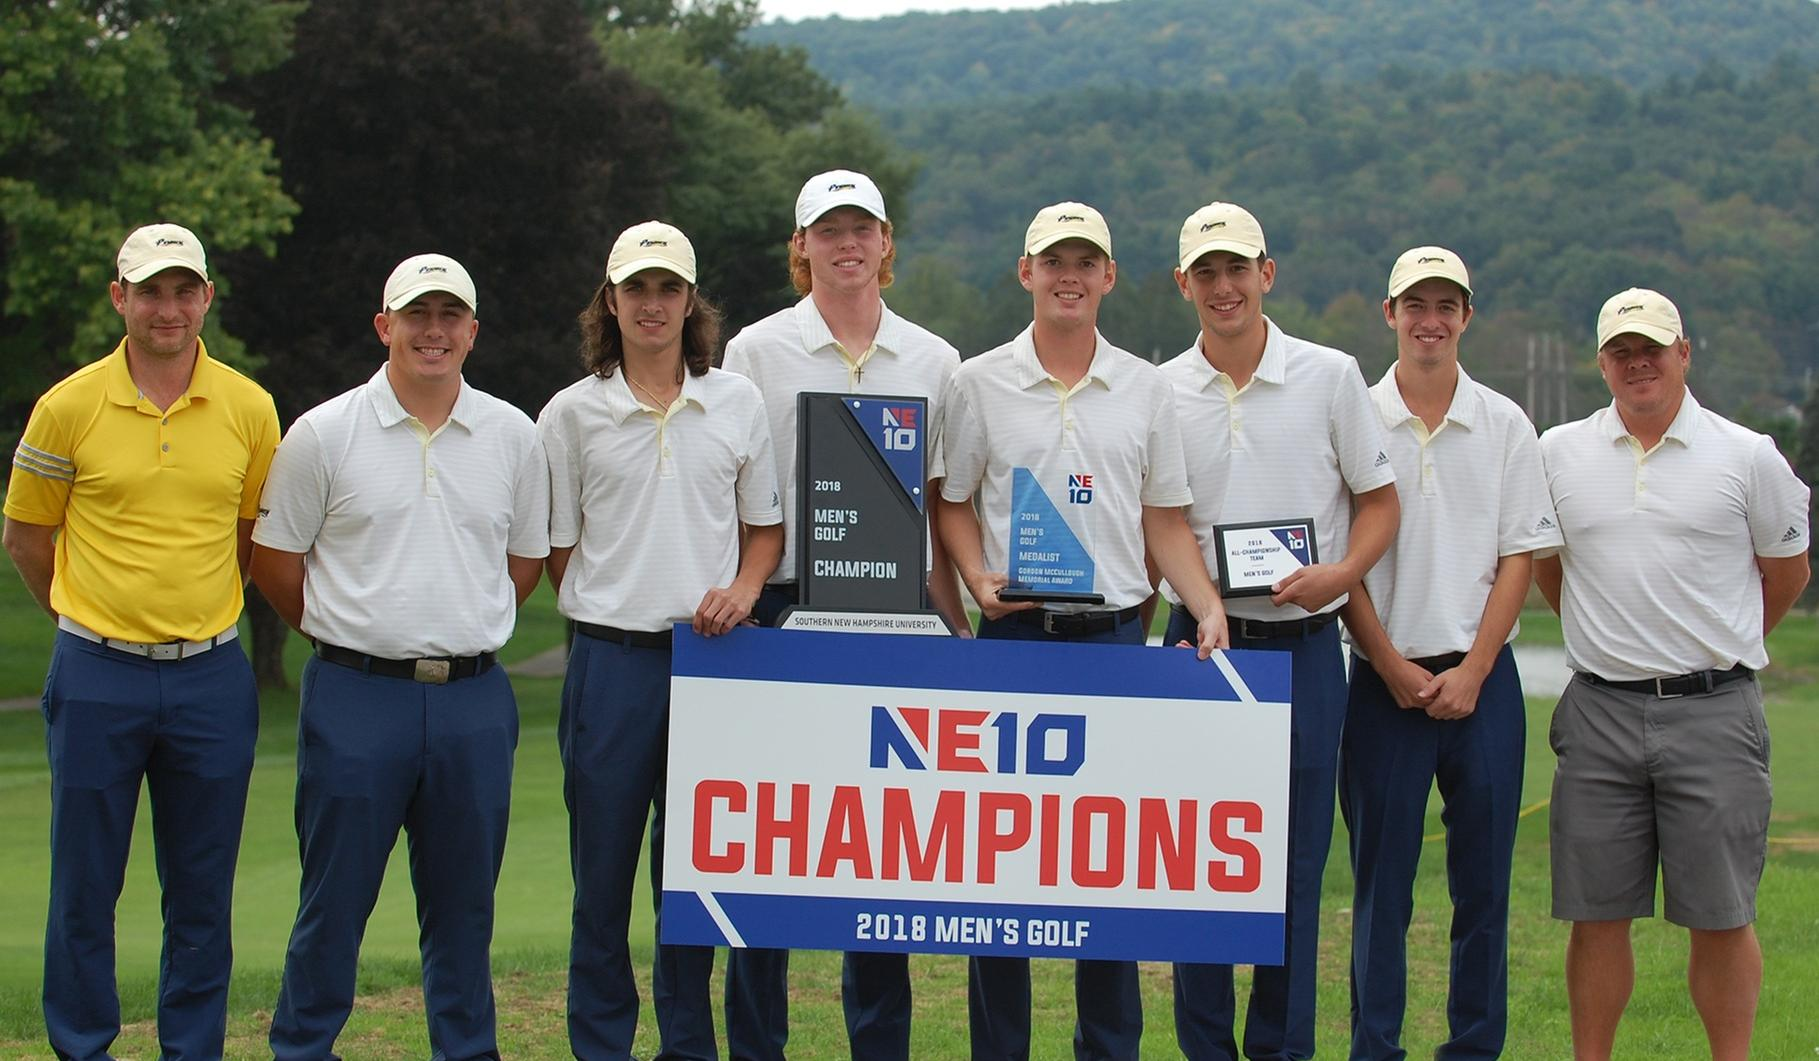 Embrace the Victory: Paradis Leads Penmen to NE10 Men's Golf Championship Title